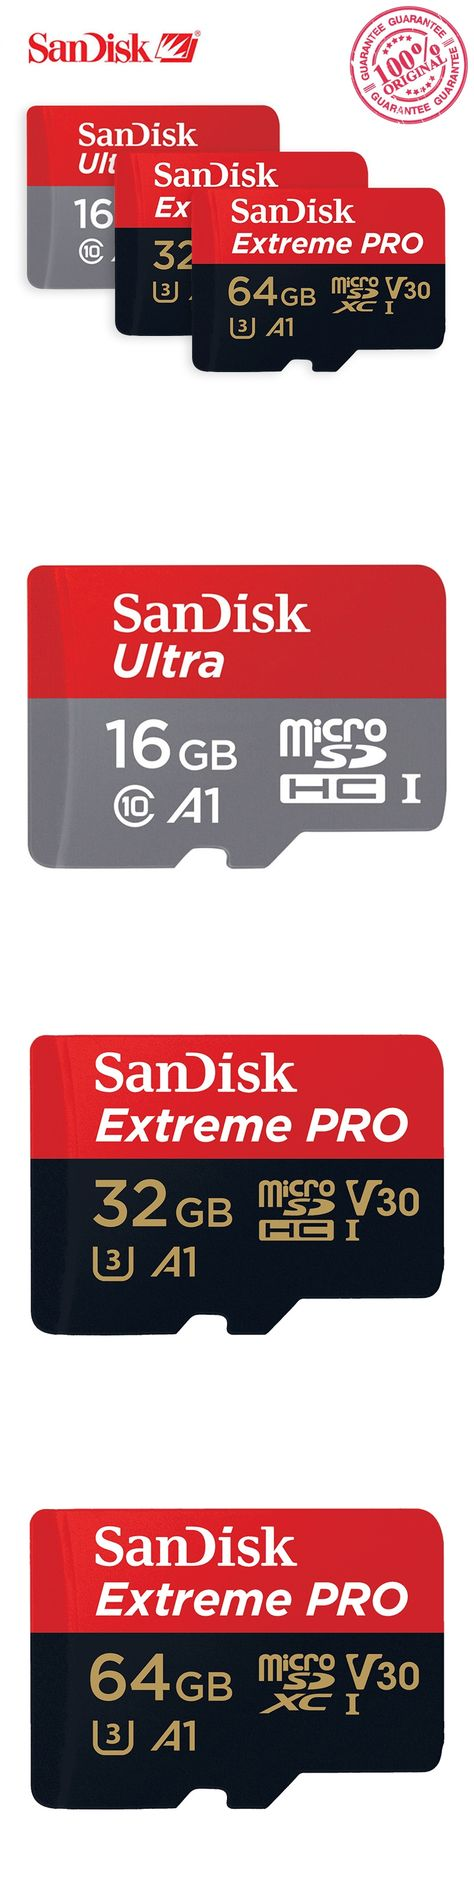 Sandisk Extreme Micro Sd Pictures Images Pro A1 Microsd 64gb 100mb S Microsdhc Uhs I Ultra Memory Card Sdhc Sdxc C